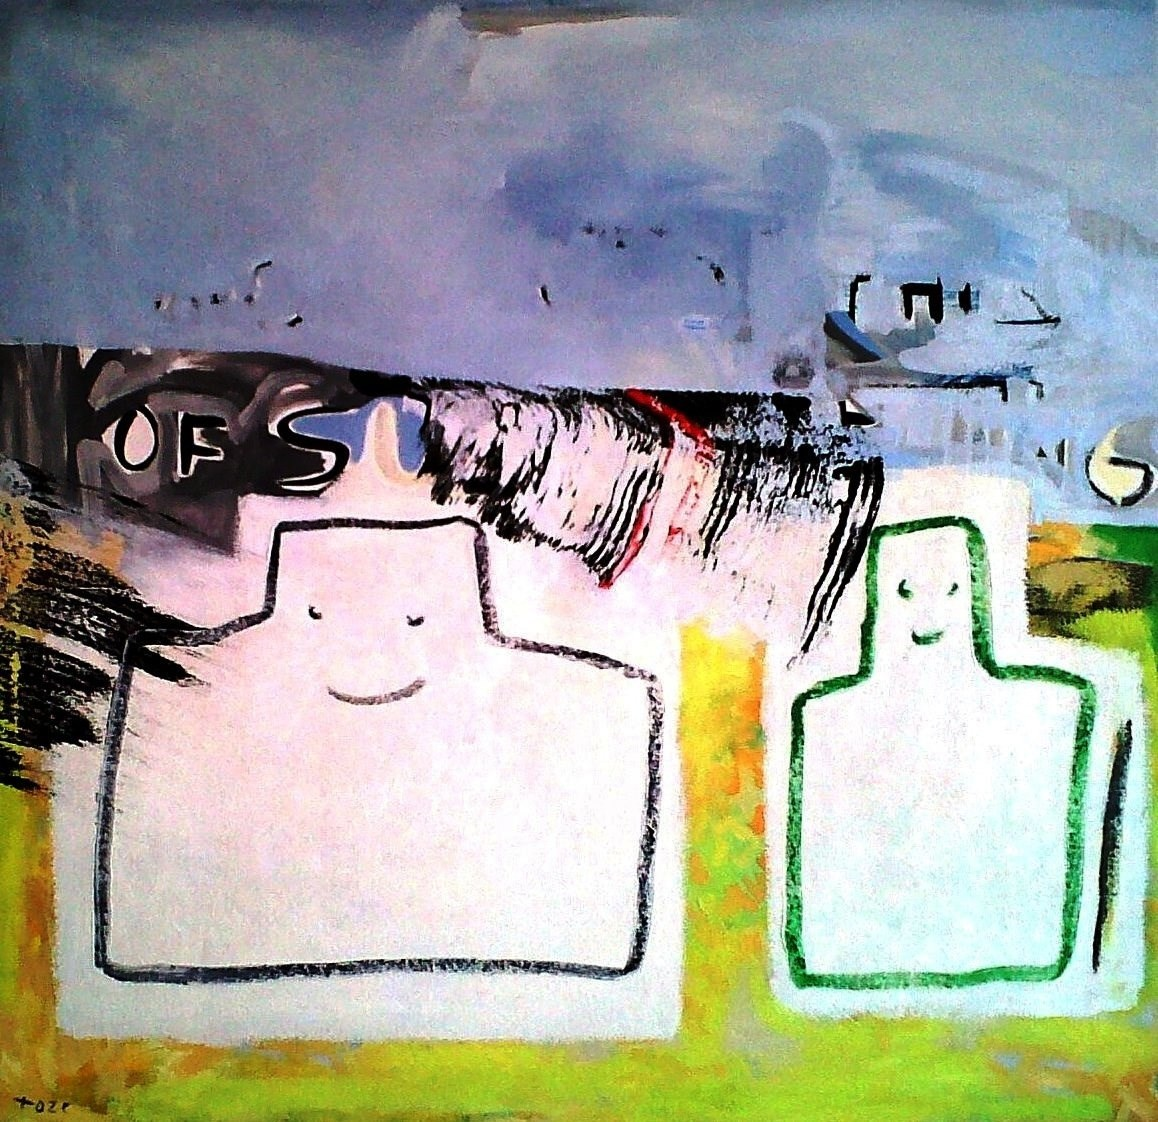 Untitled (Who Would Think of Such a Thing), Pintura Tela Abstracto original por Toze Figueiredo